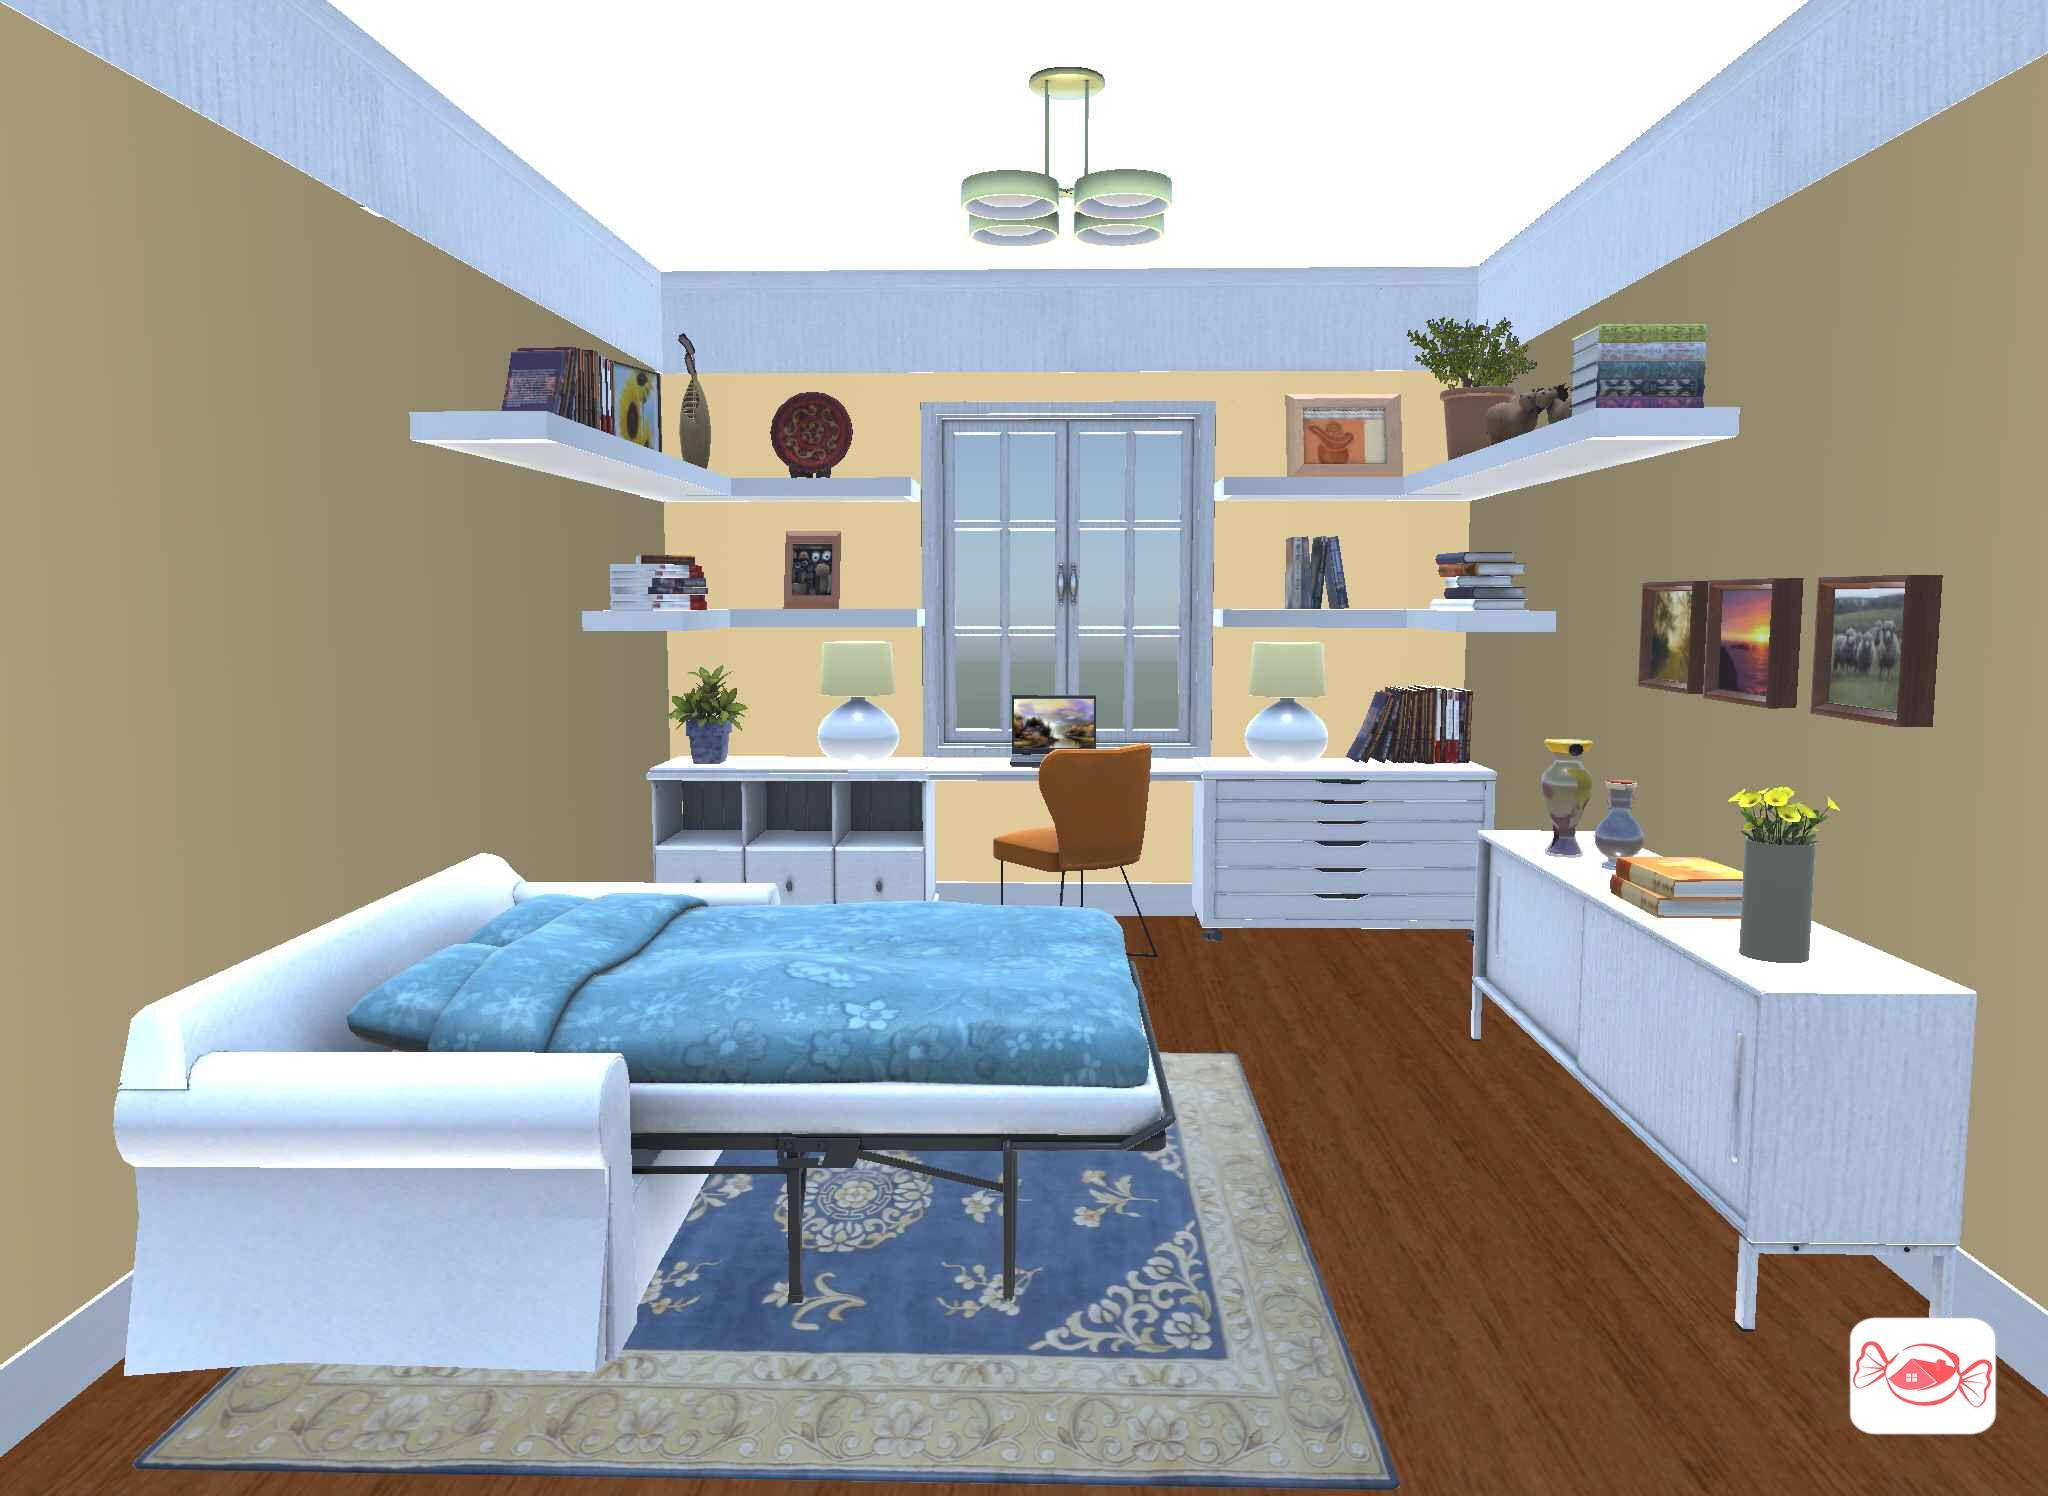 Office guest bedroom created with home sweet  app also agora rh pinterest